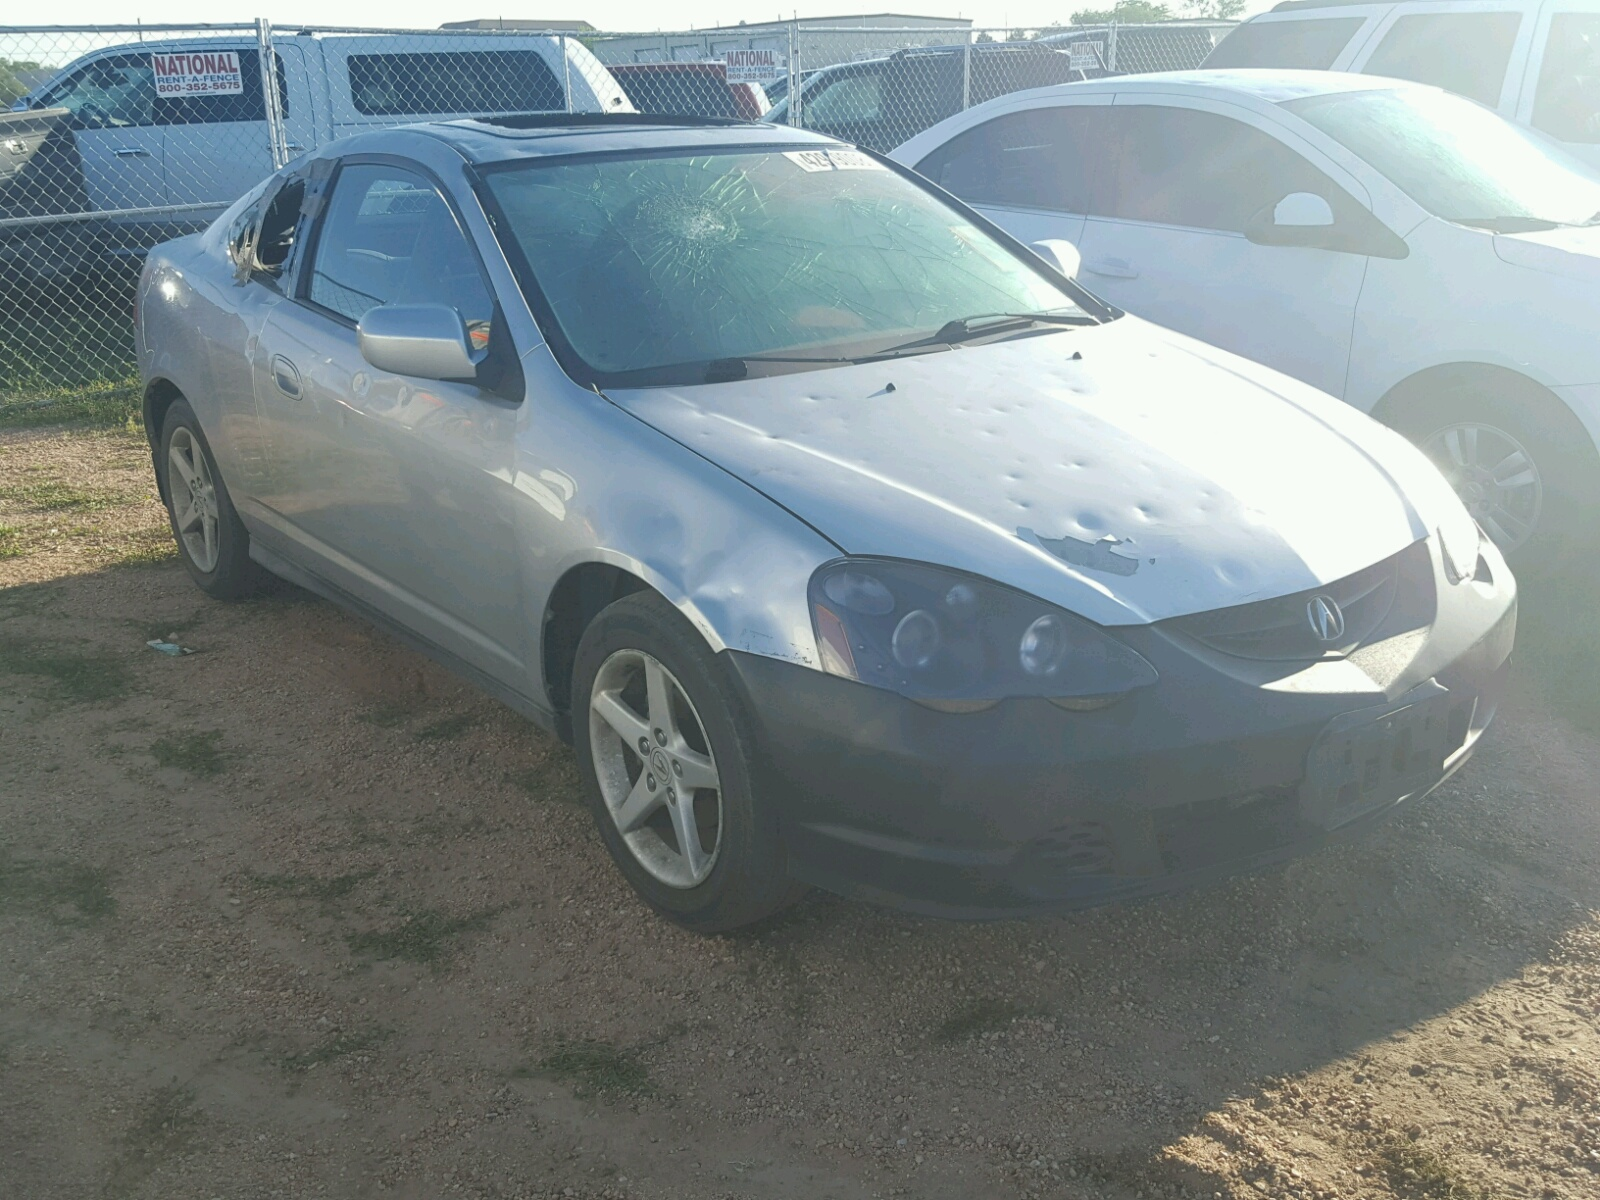 Acura RSX For Sale At Copart Colorado Springs CO Lot - 2004 acura rsx for sale